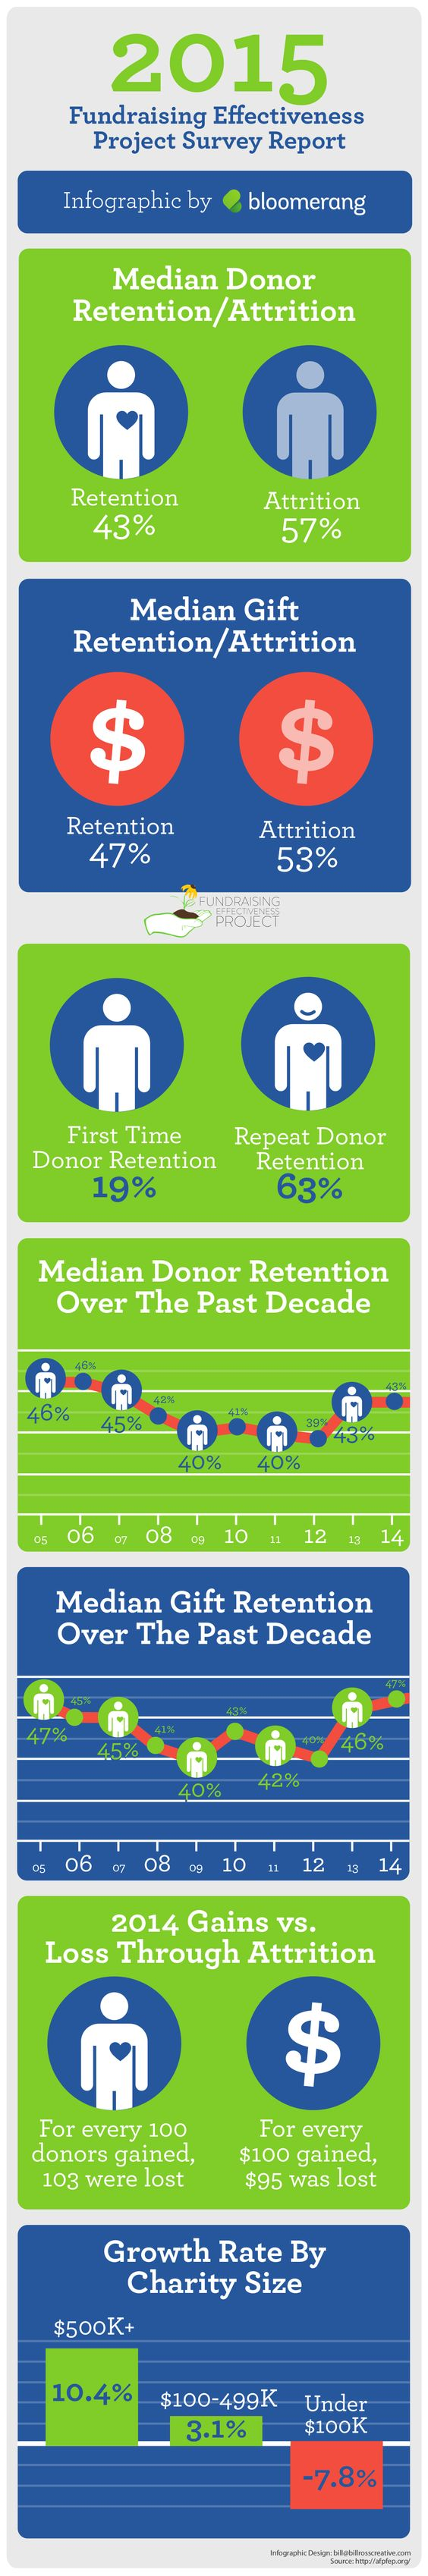 Donor retention stats